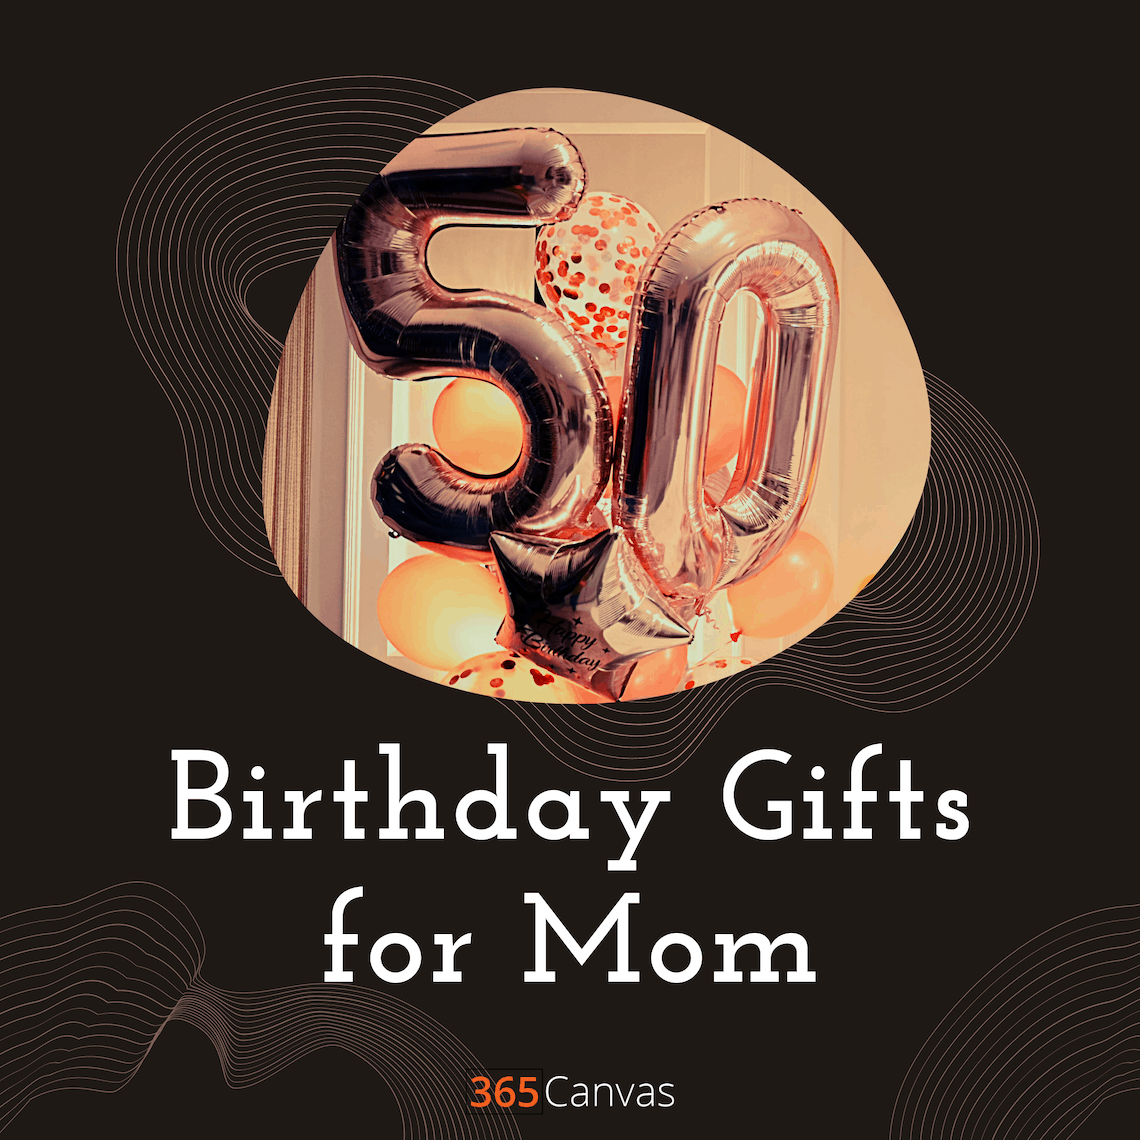 35+ Surprise Birthday Gift Ideas for Mom That She'll Adore